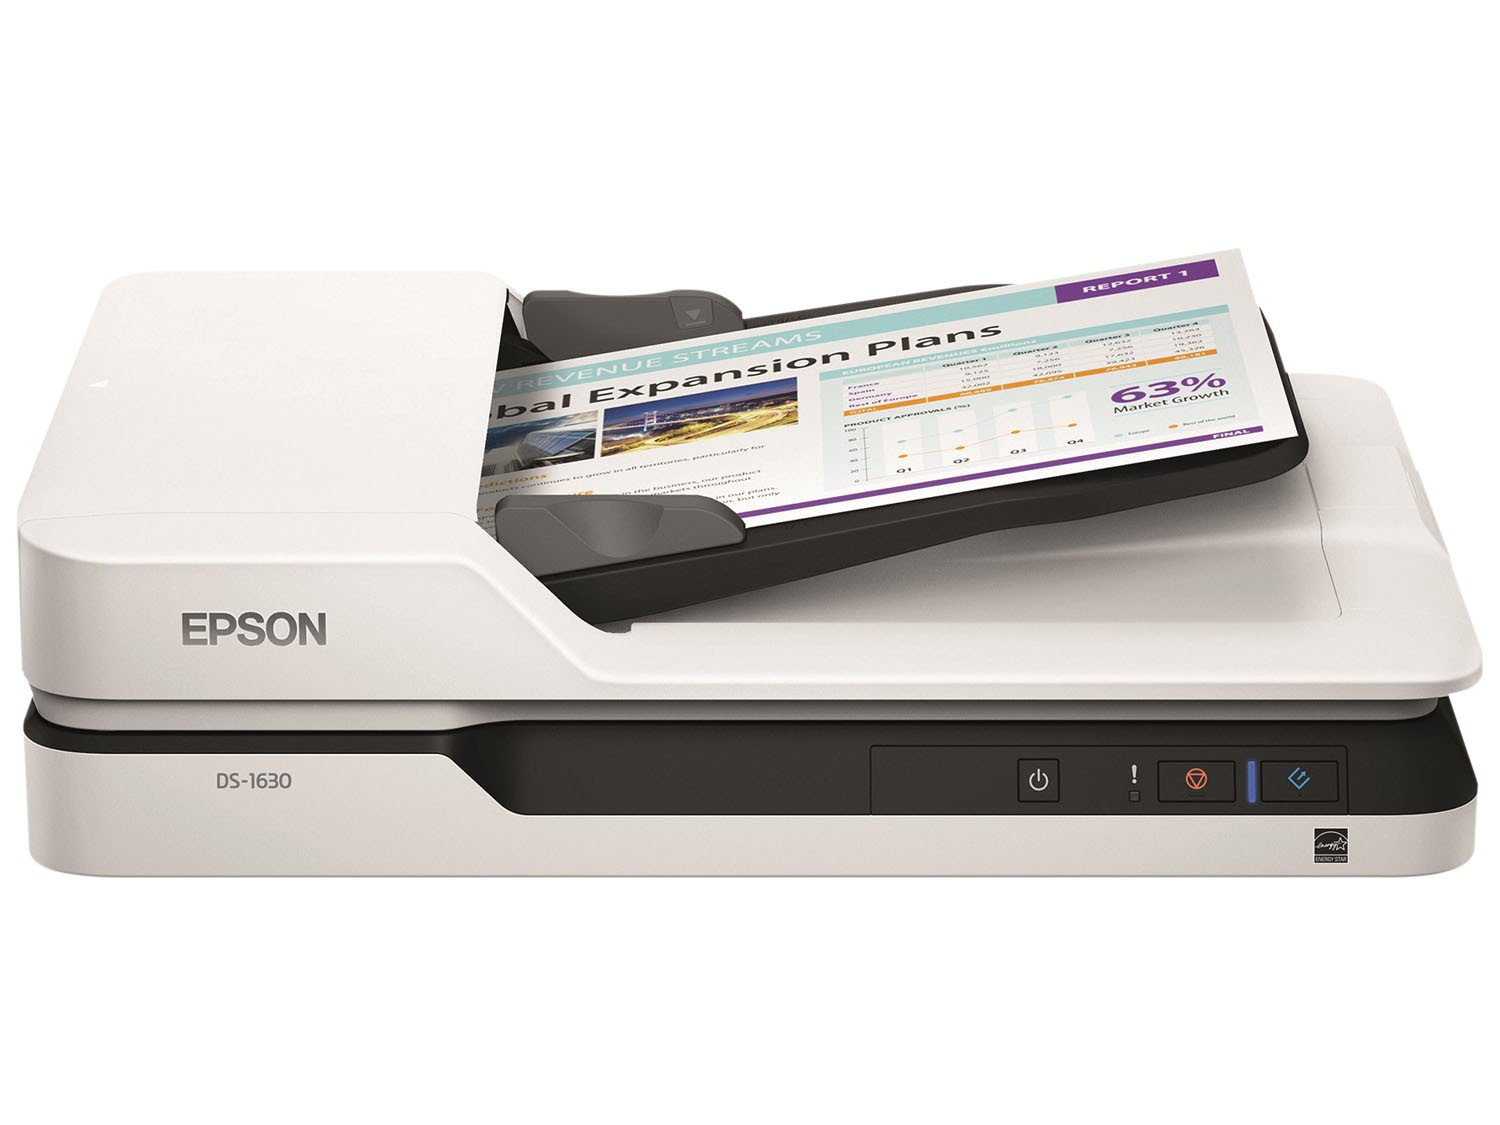 Foto 1 - Scanner de Mesa Epson WorkForce DS-1630 - Colorido 1200dpi